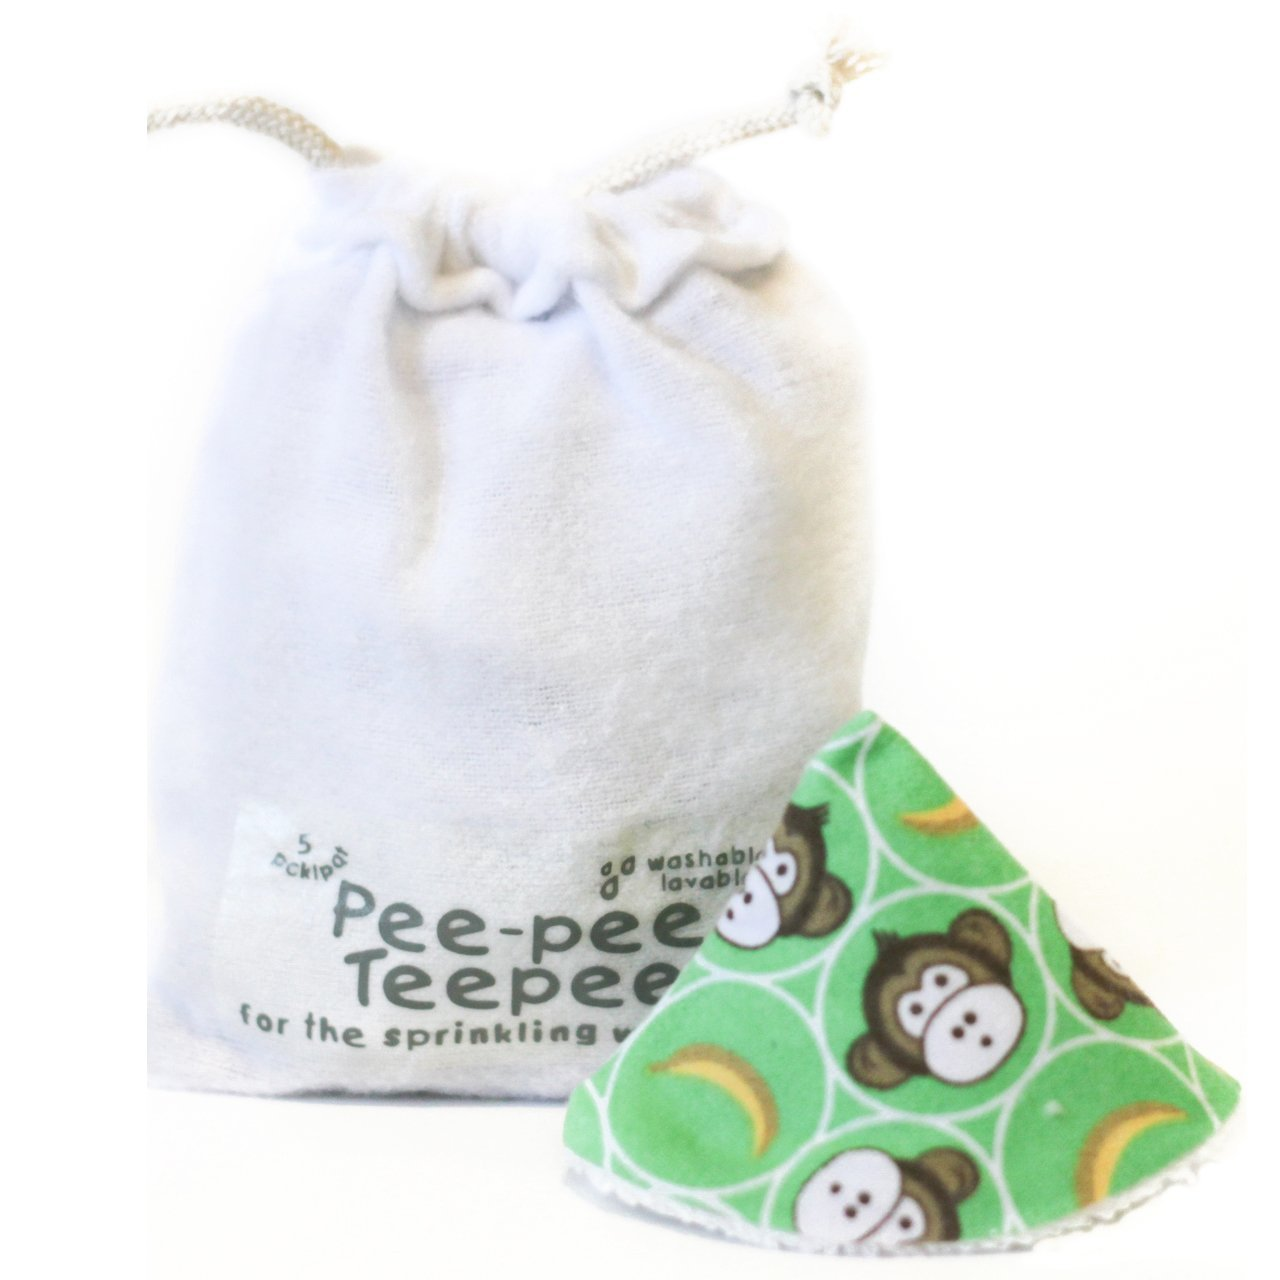 Pee-pee Teepee Lil Monkey Green - Laundry Bag Beba Bean PT3090